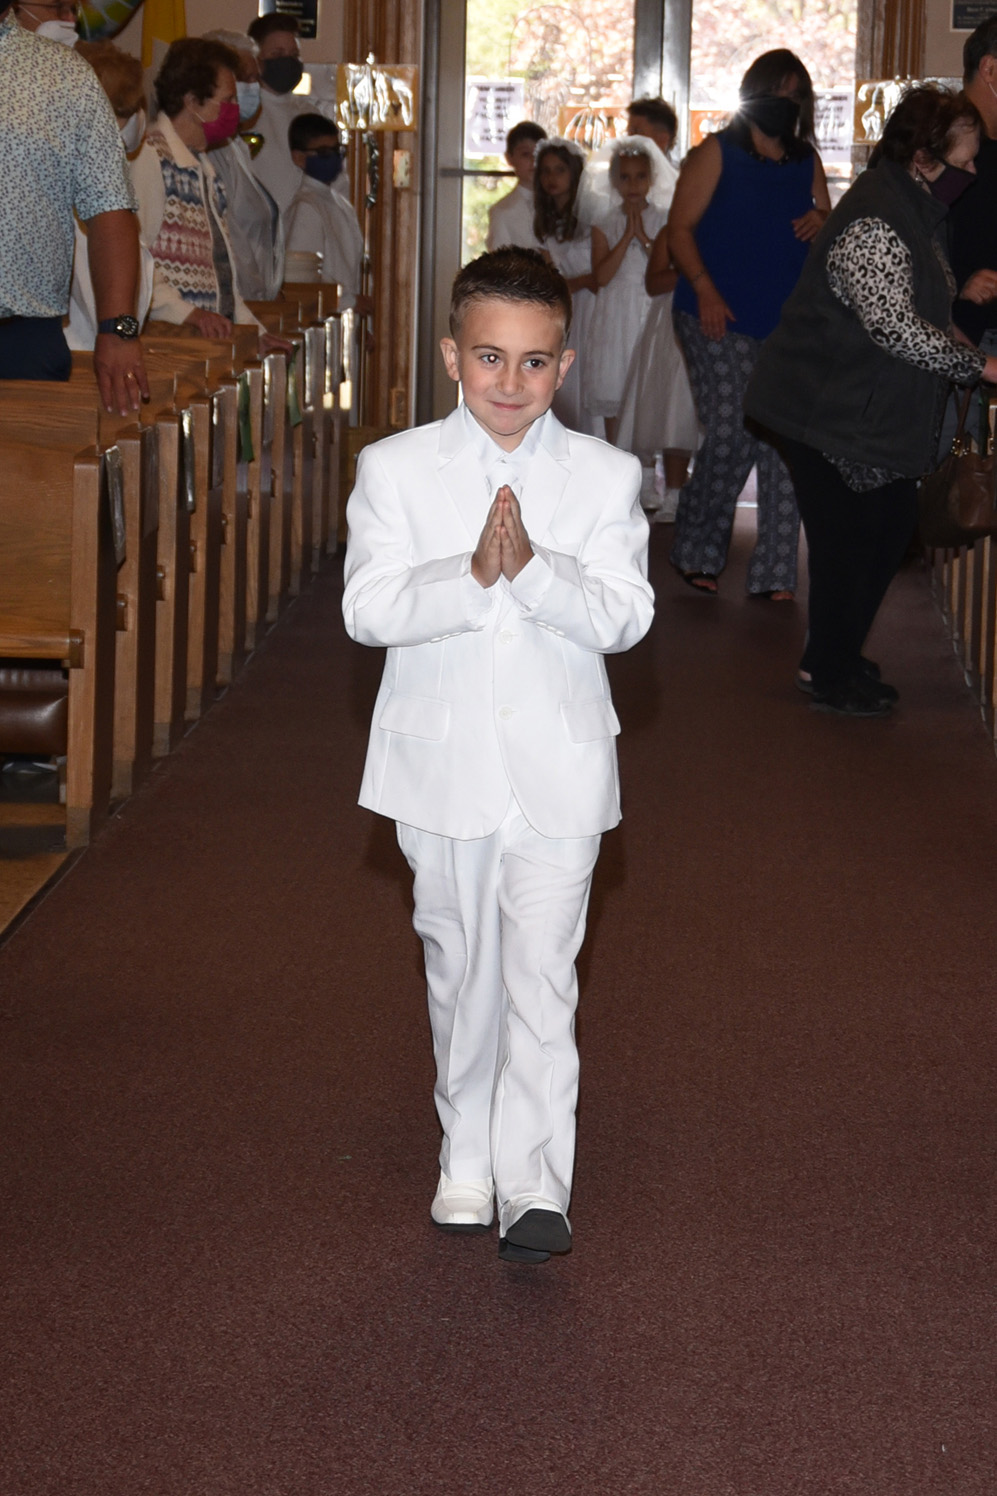 FIRST-COMMUNION-MAY-15-2021-10011051